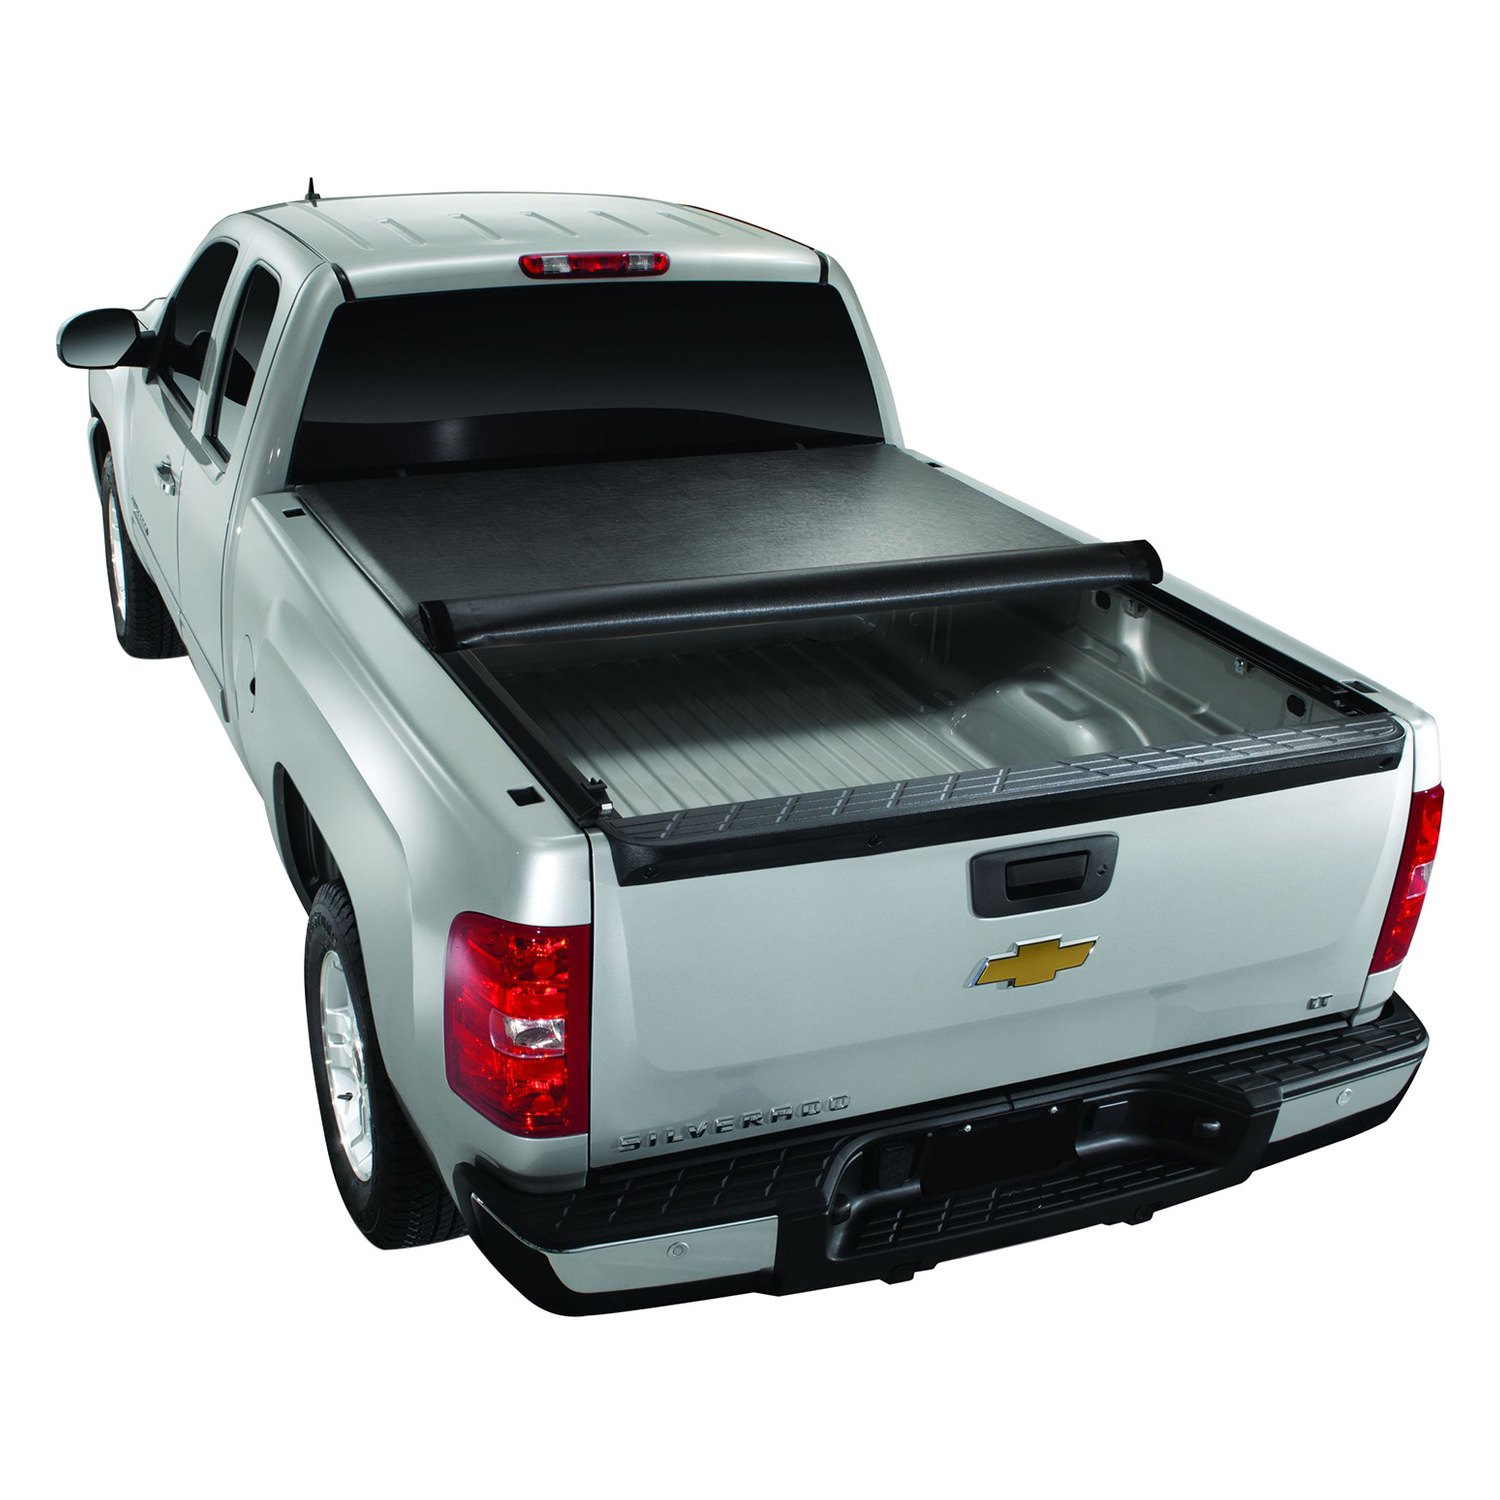 Dodge Bed Covers: Dodge Ram 2006 Soft Roll-Up Tonneau Cover